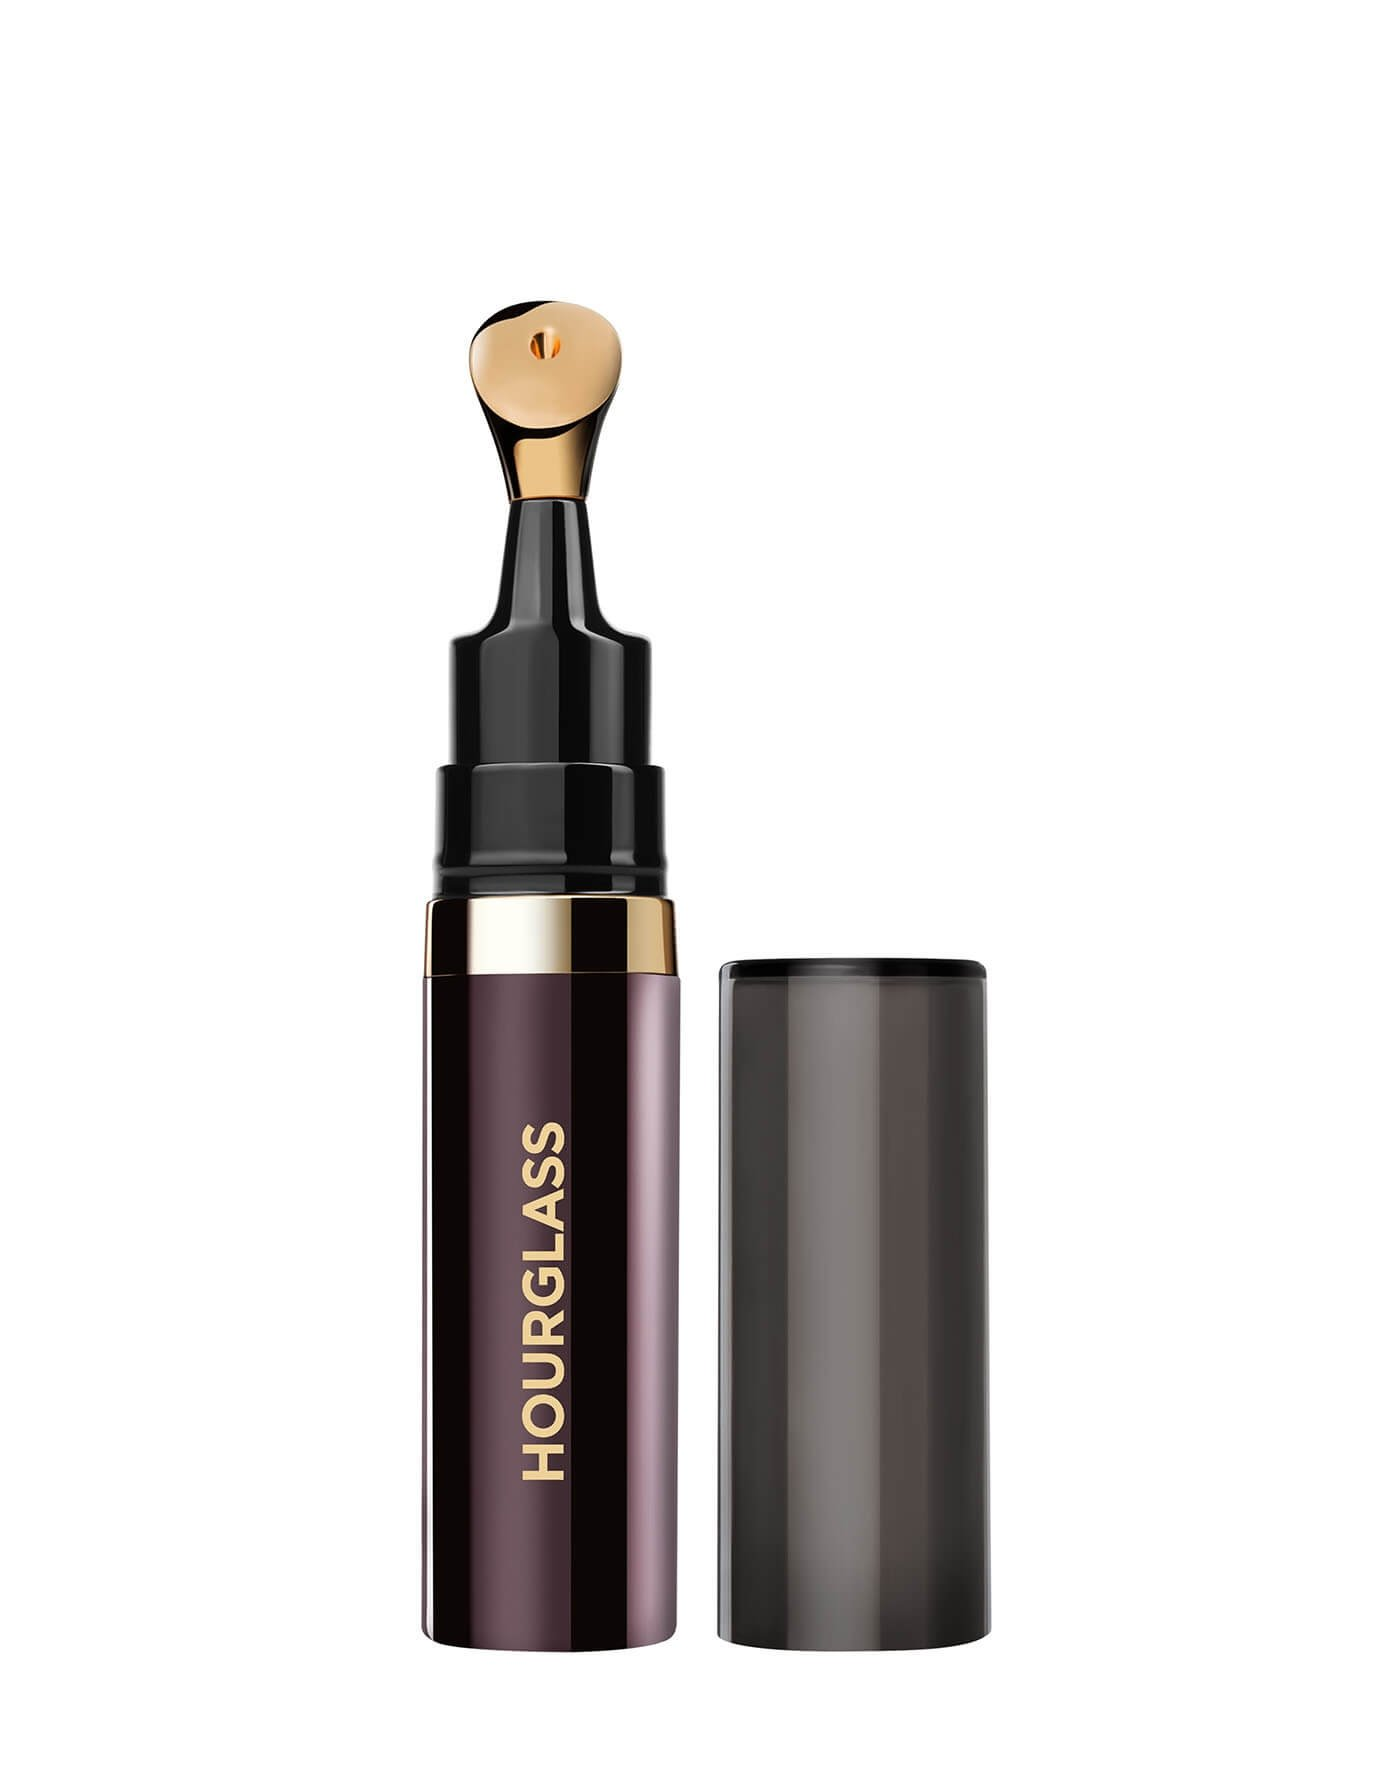 Nº 28™ Lip Treatment Oil – Hourglass Cosmetics